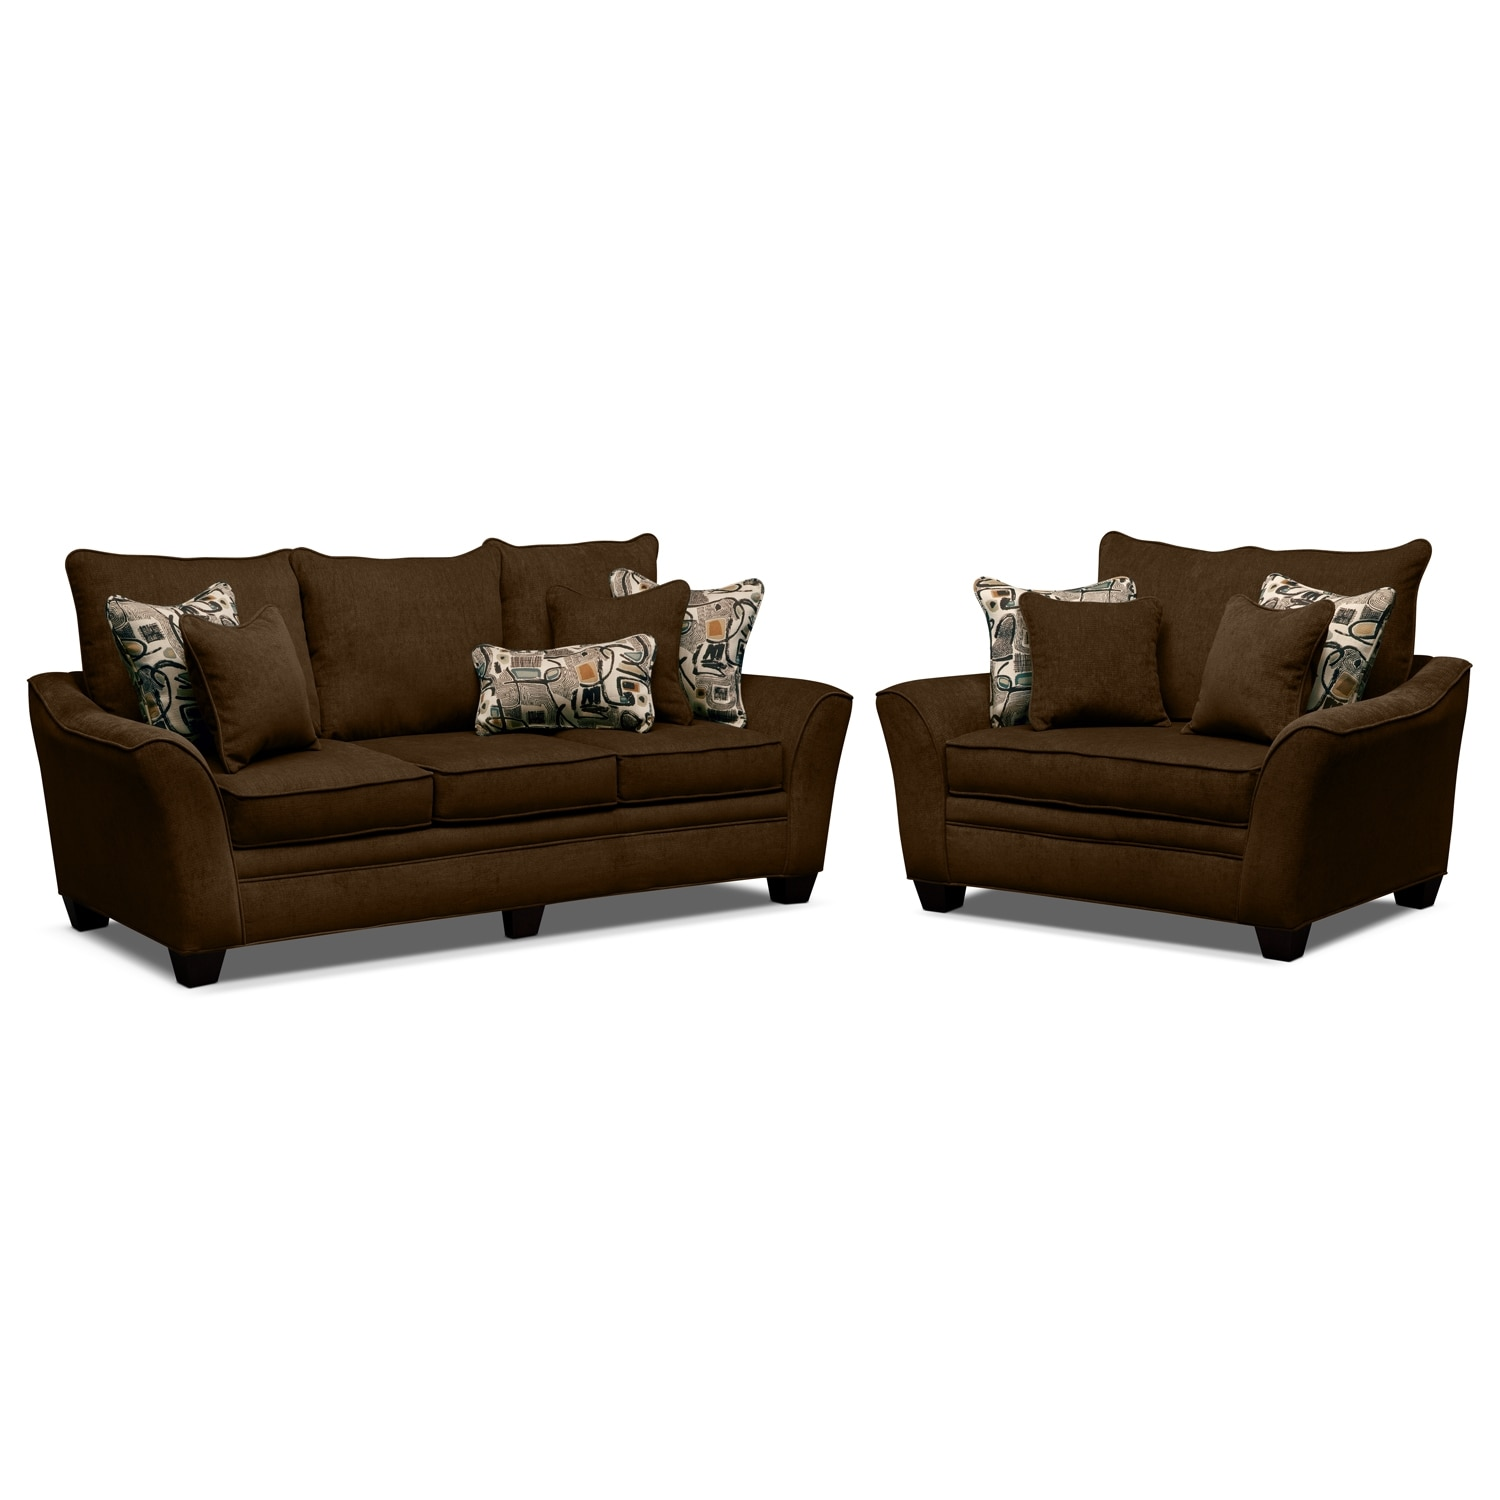 Living Room Furniture - Mandalay 2 Pc. Living Room w/Chair